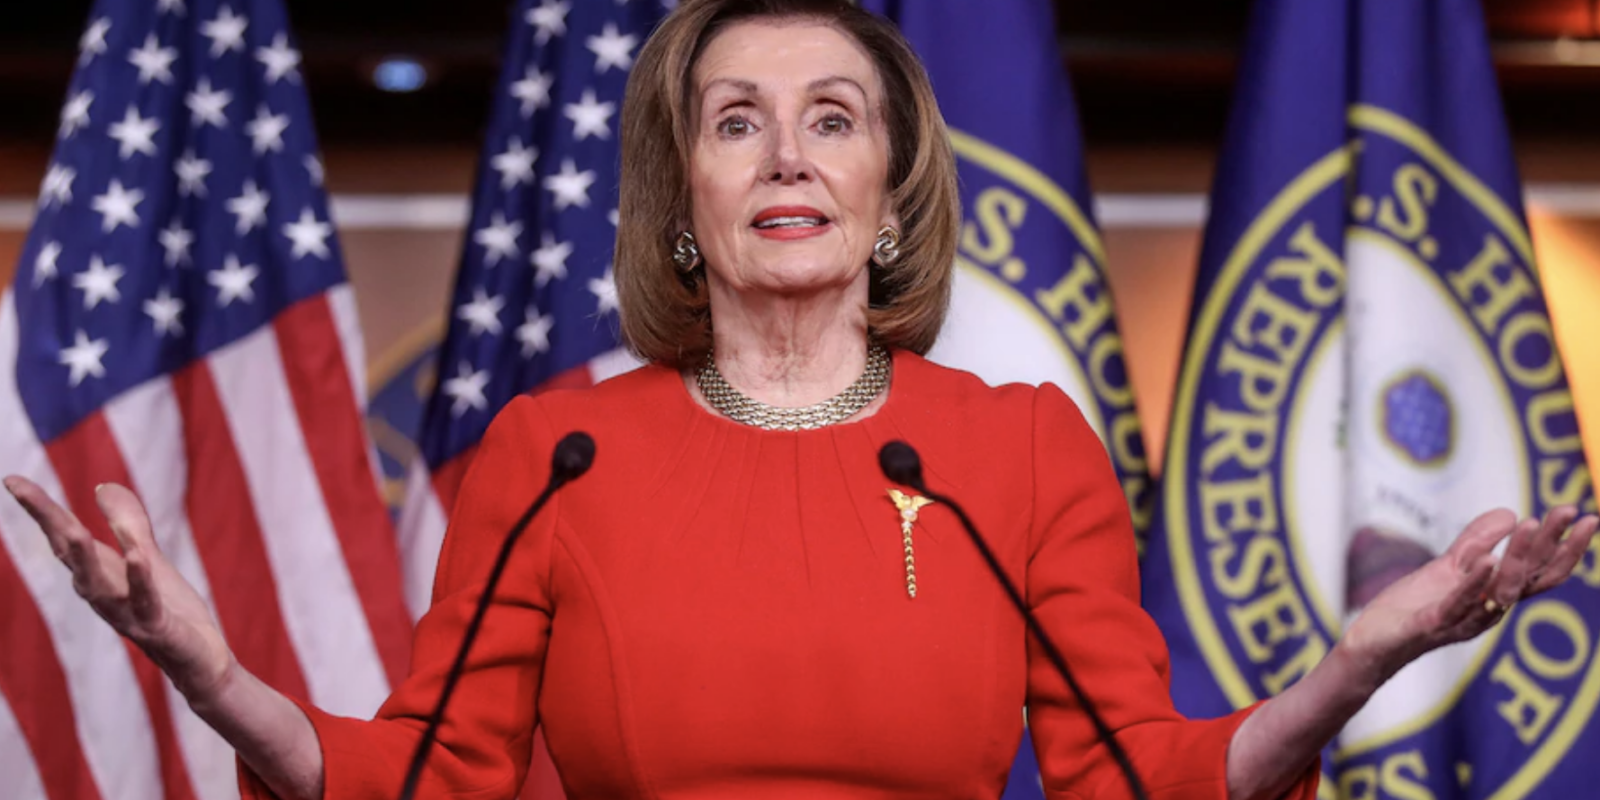 Nancy Pelosi could become the next President of the United States